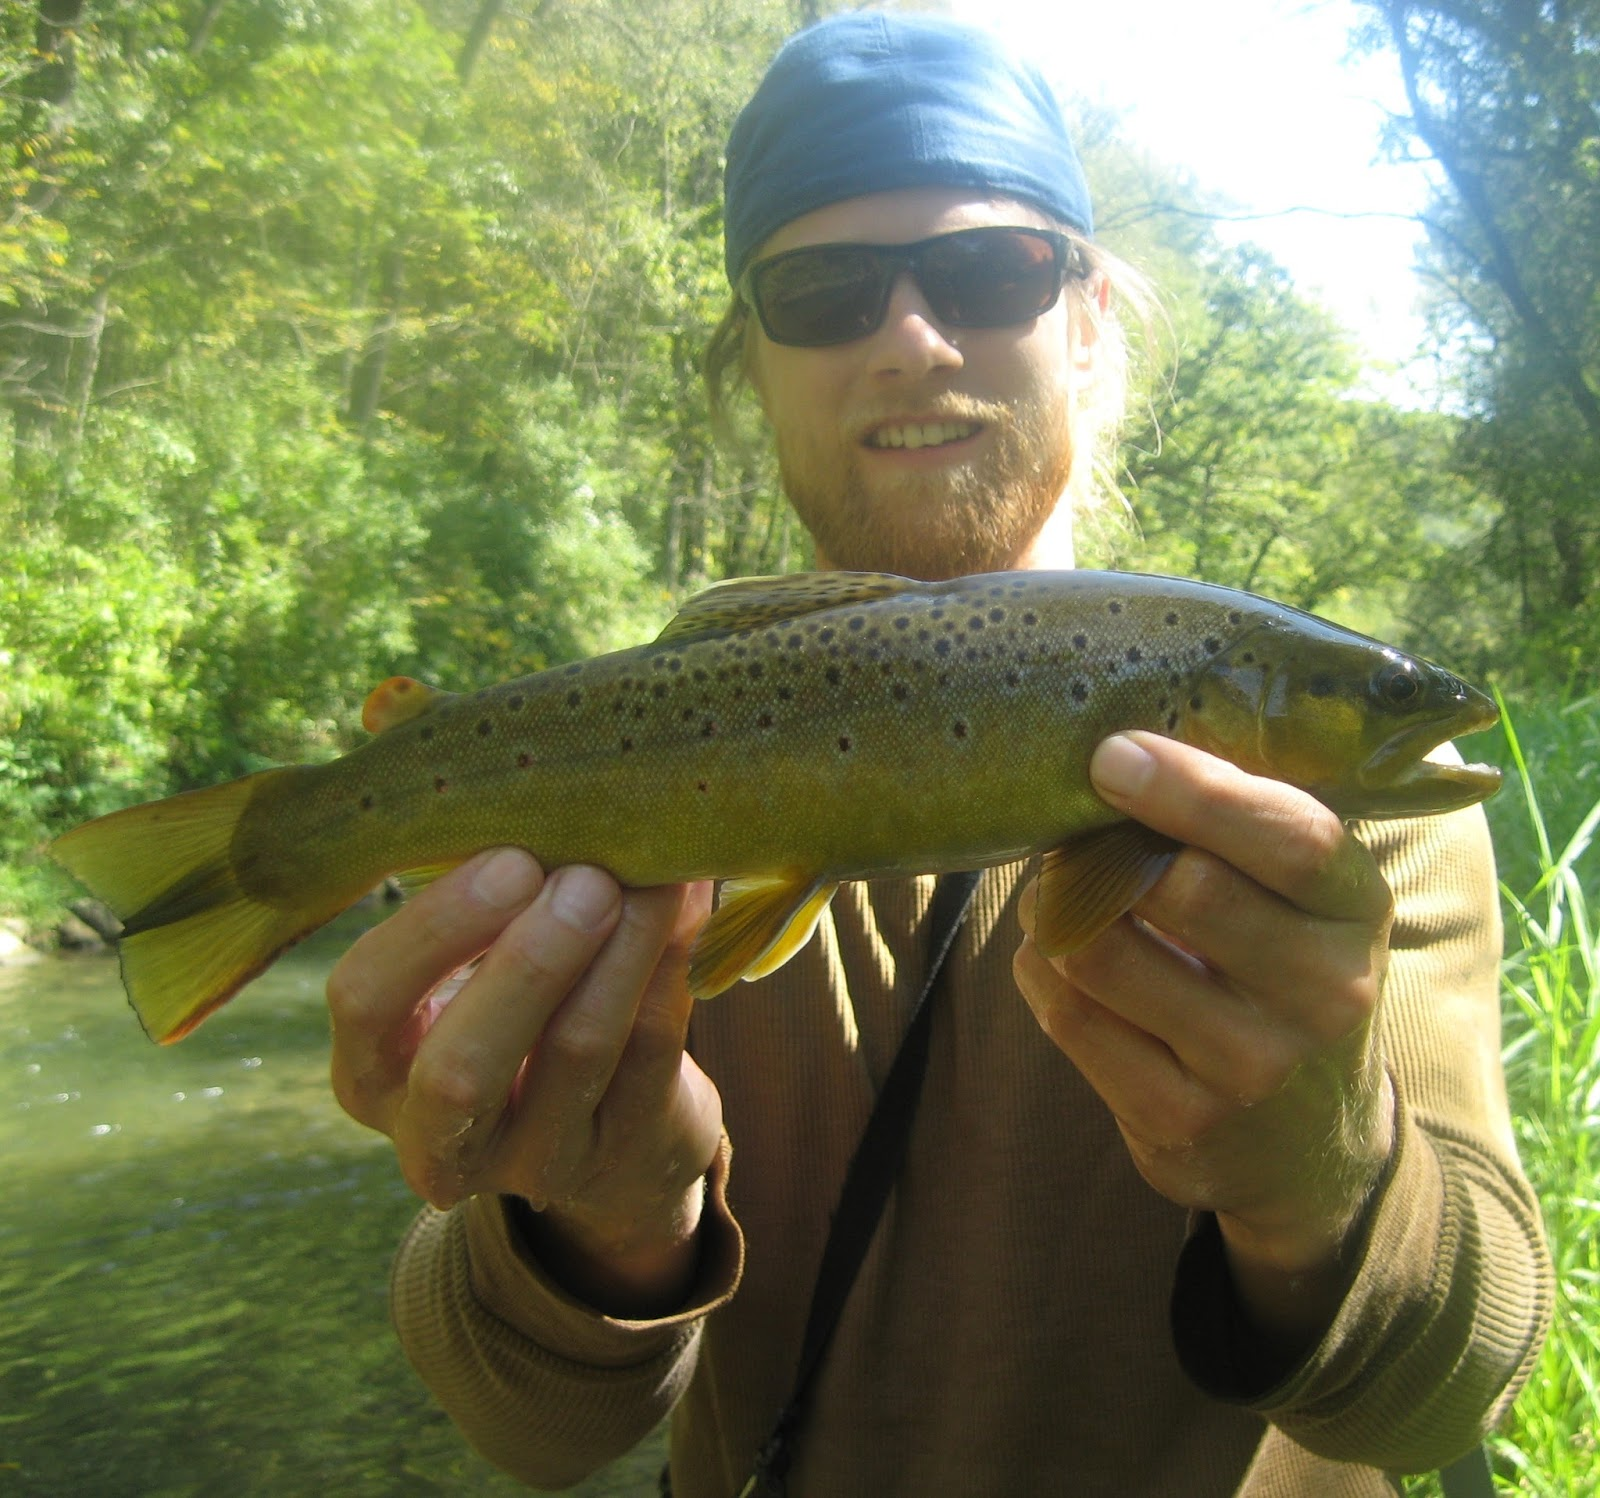 Minnesota driftless fly fishing trip report fishin 39 with tim for Driftless fly fishing